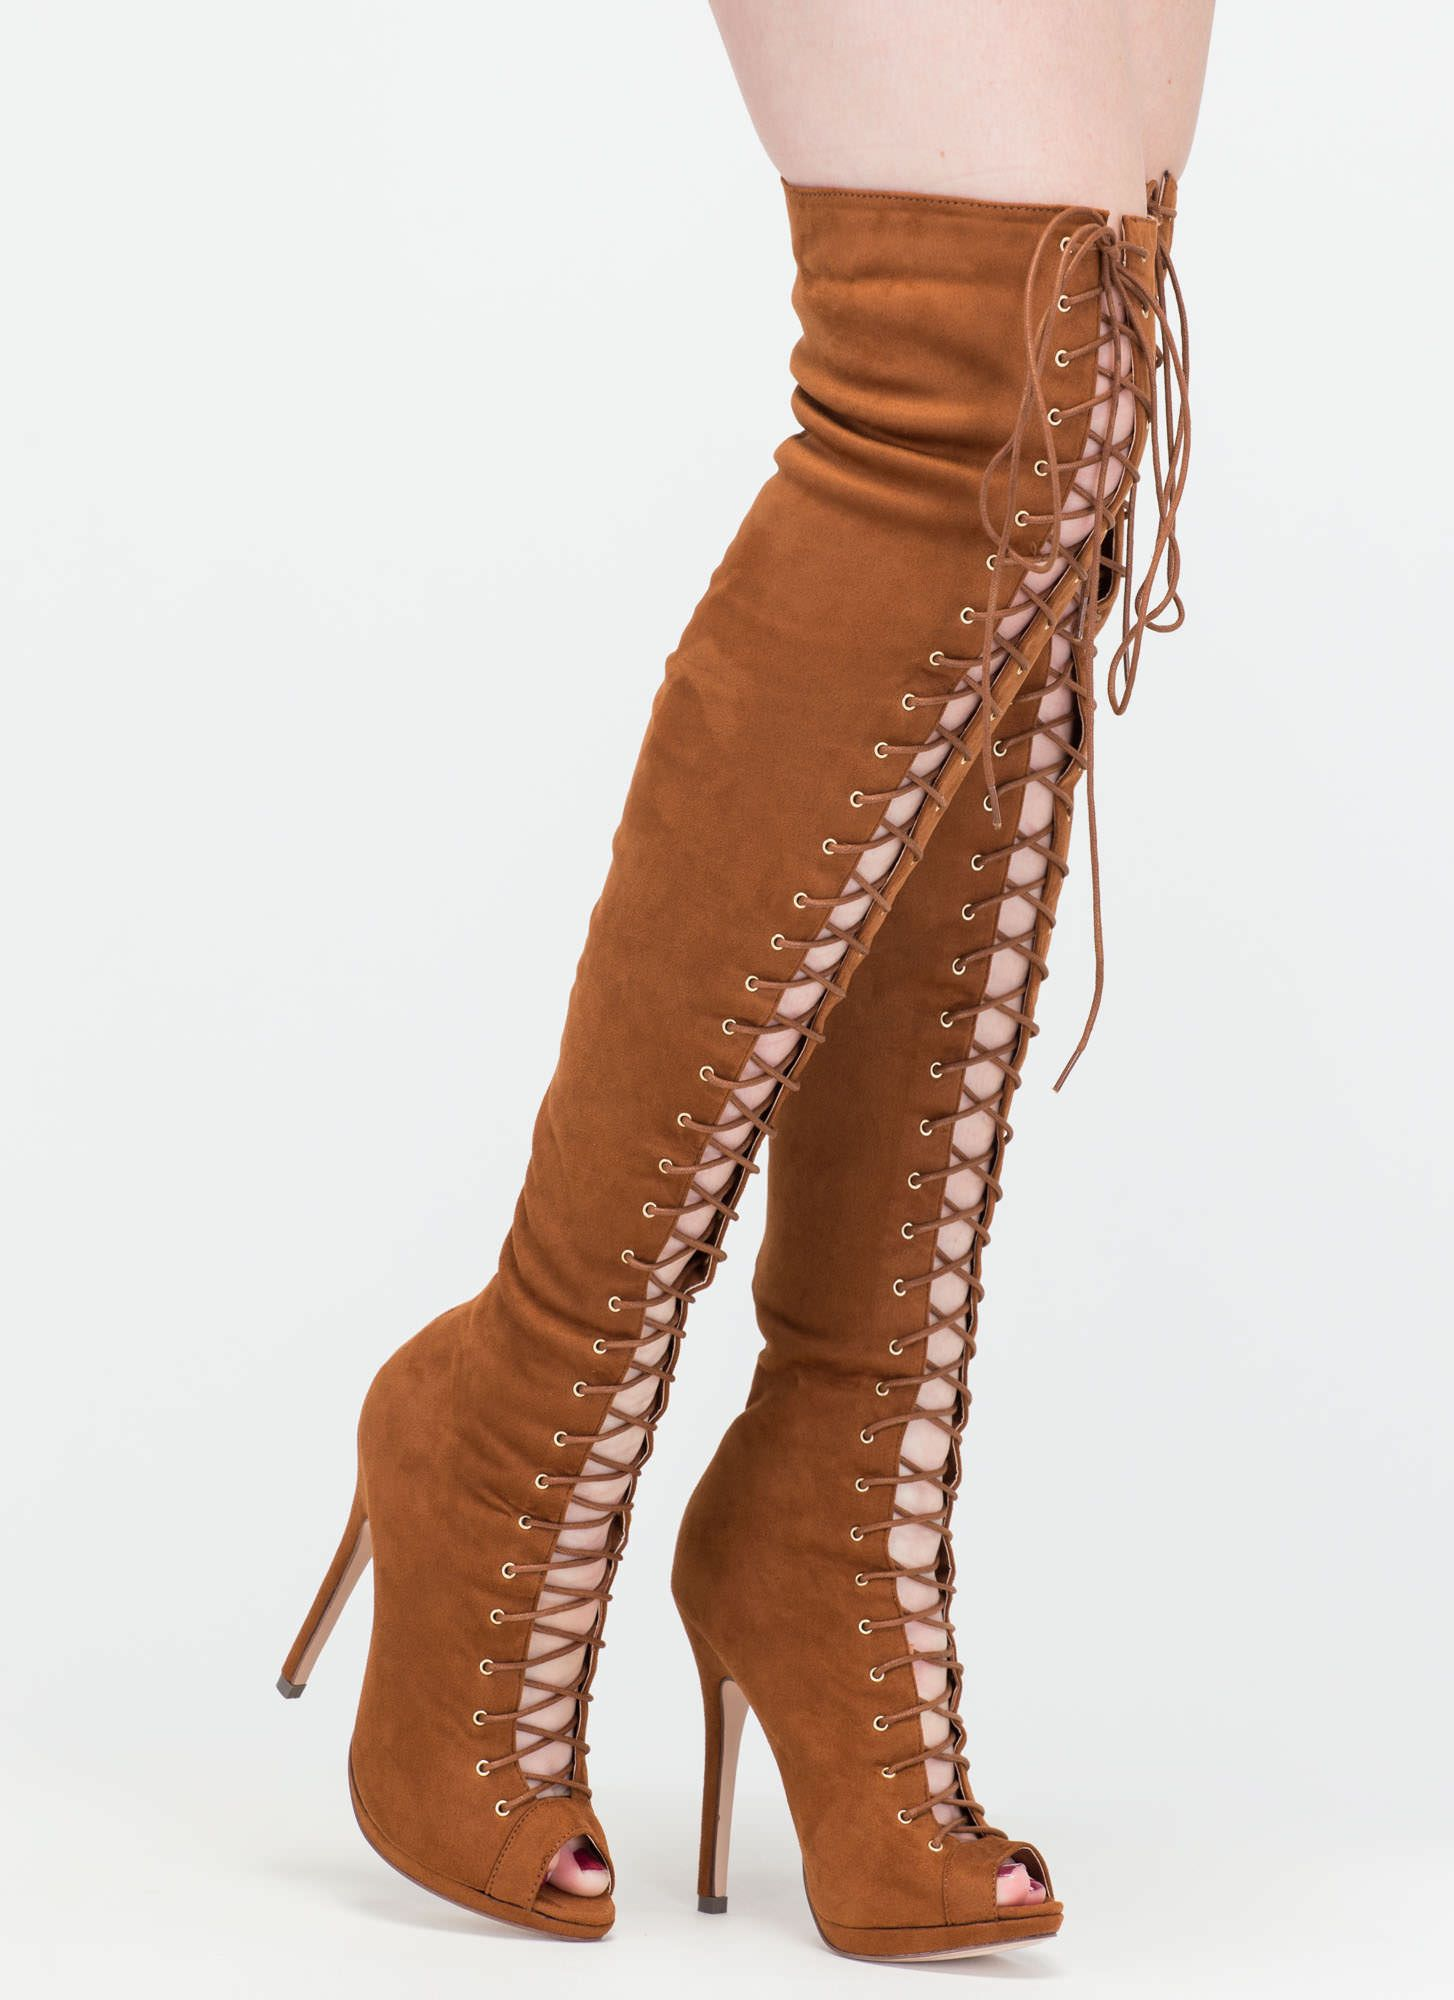 b93bced14a3 Revamp Faux Suede Over-The-Knee Boots GoJane.com